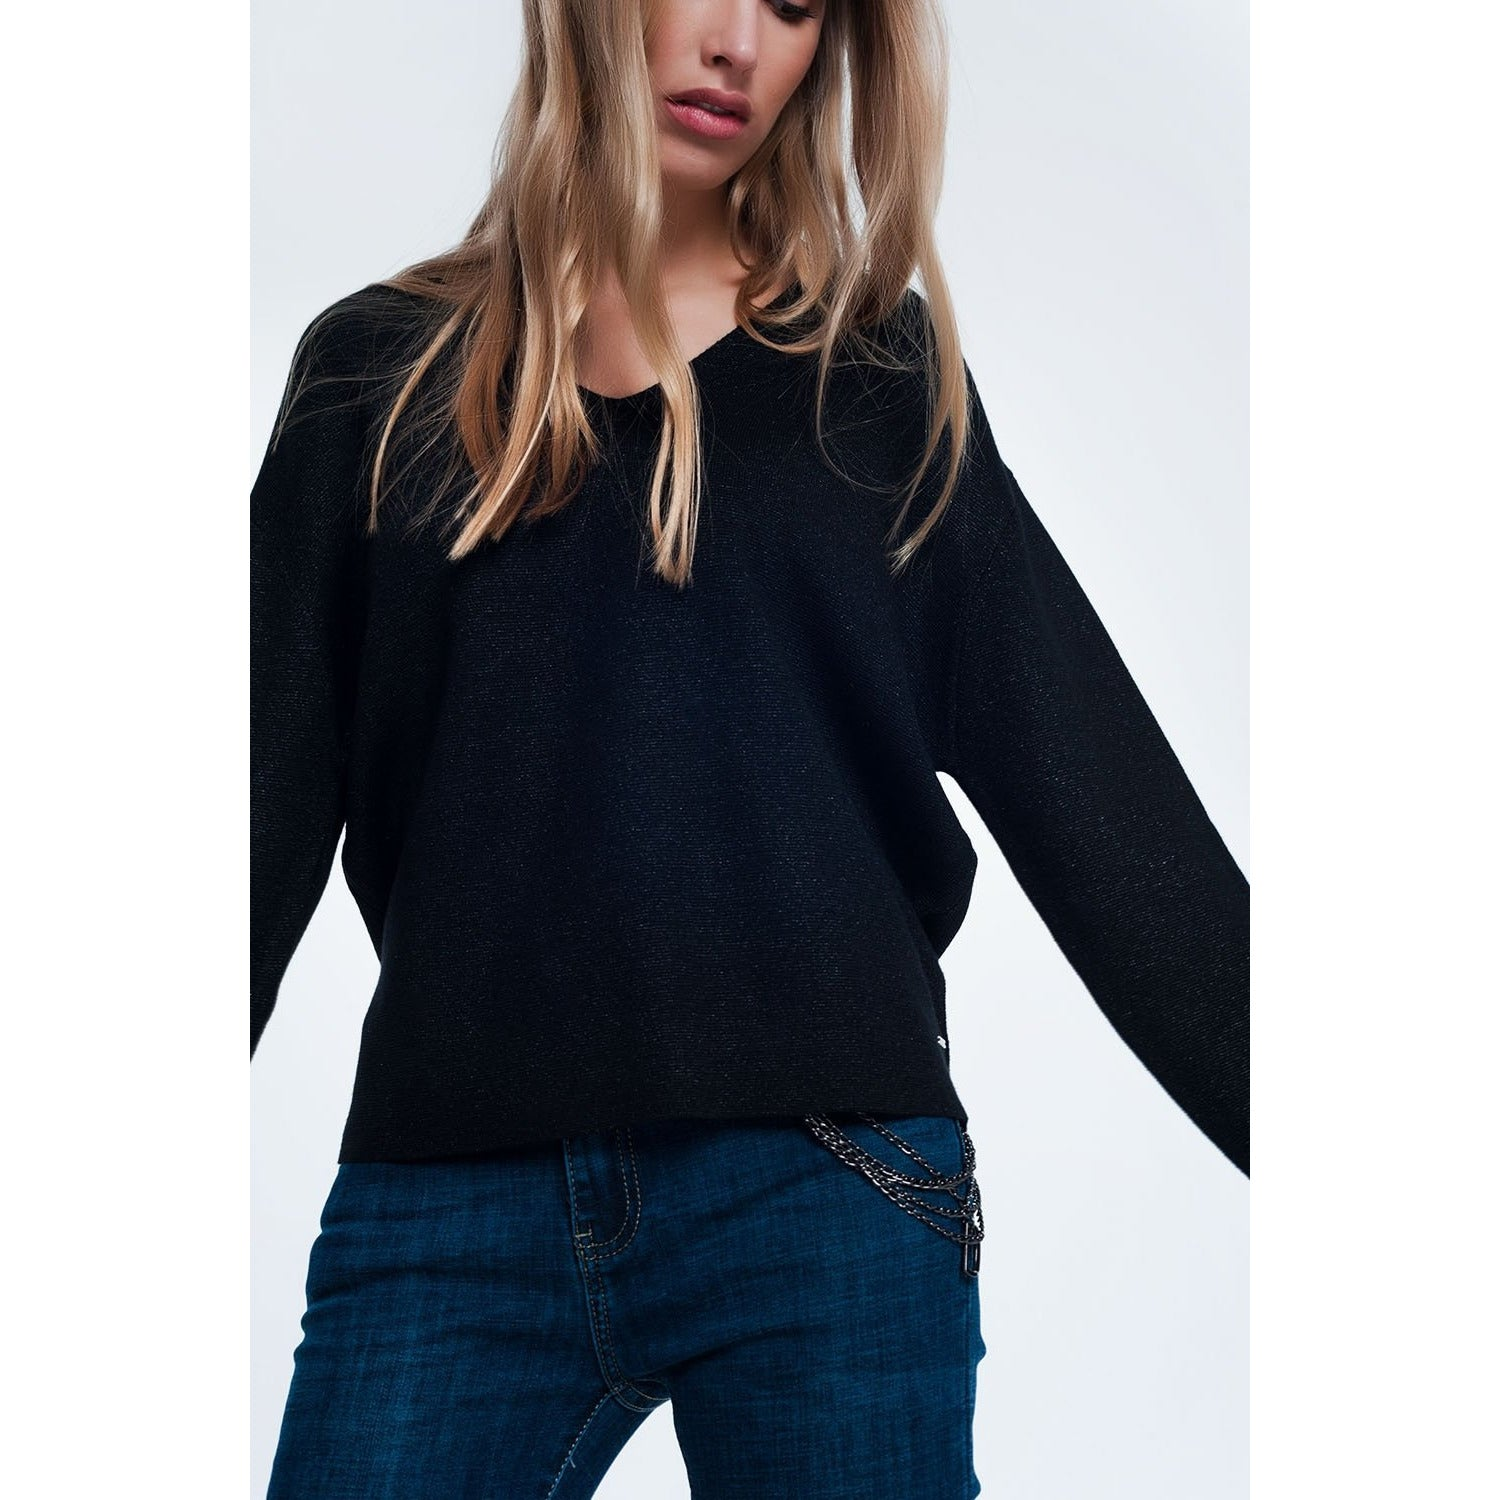 Black Glitter Sweater With V-Neck - Miraposa